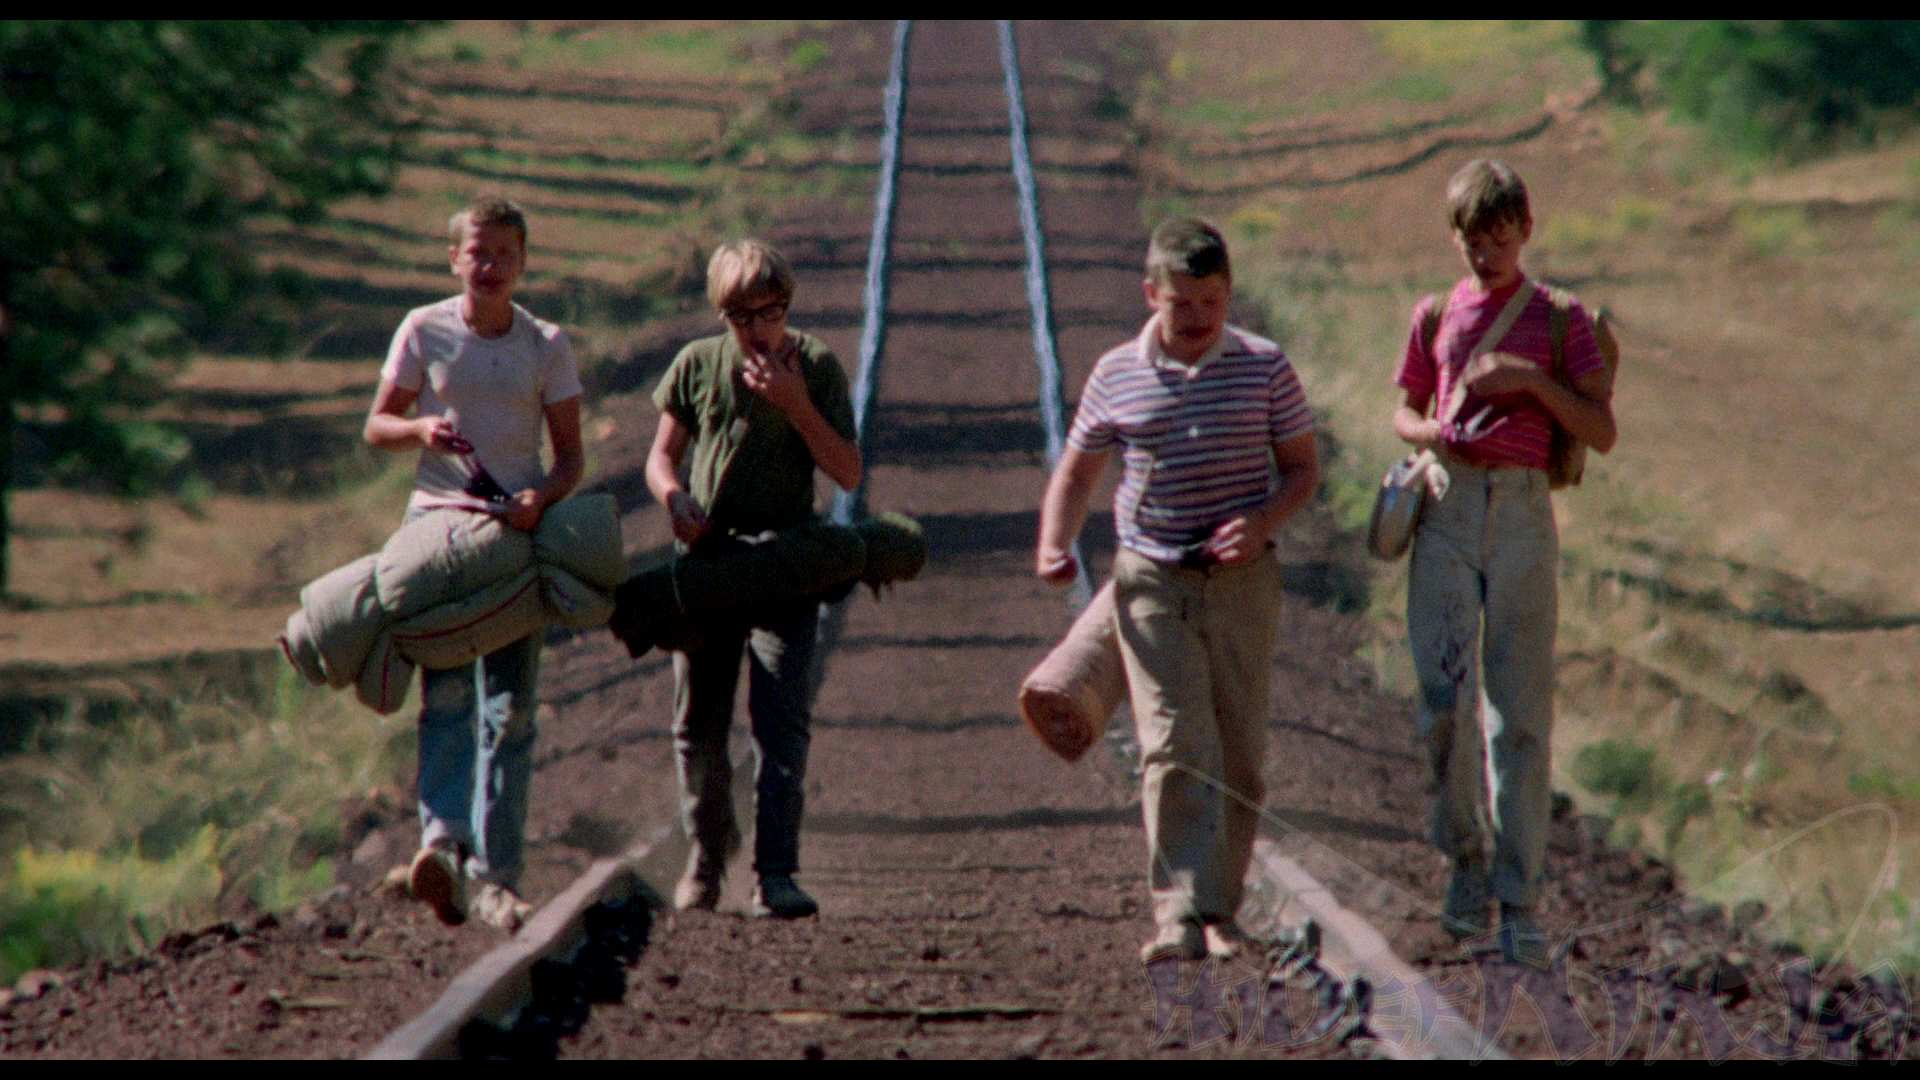 a review of the movie rob reiners stand by me Stand by me, thanks to rob reiner's flawless direction, captures and conveys the warmth, intimacy, and sensitivity of such a relationship the film is both an ode to youthful friendship and a lament for the loss of that precious bond between grown men.